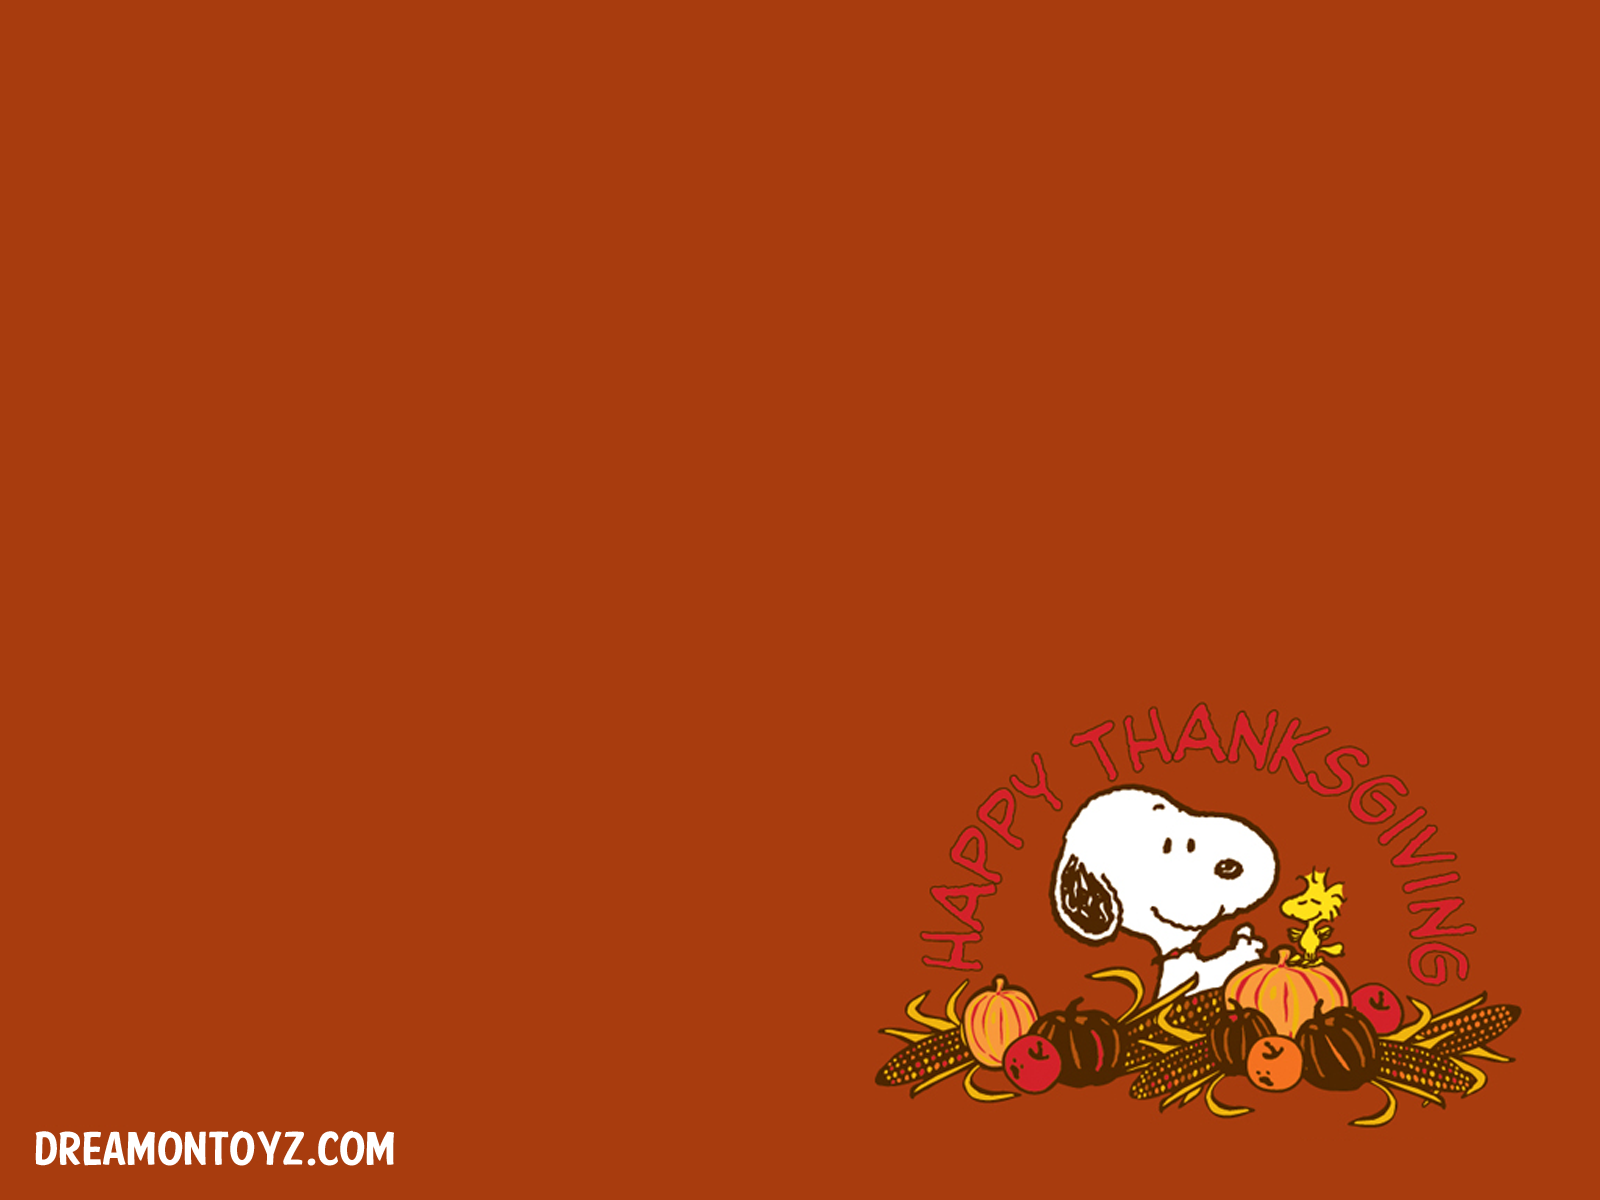 ... / Pics / Gifs / Photographs: Peanuts Snoopy Thanksgiving wallpapers